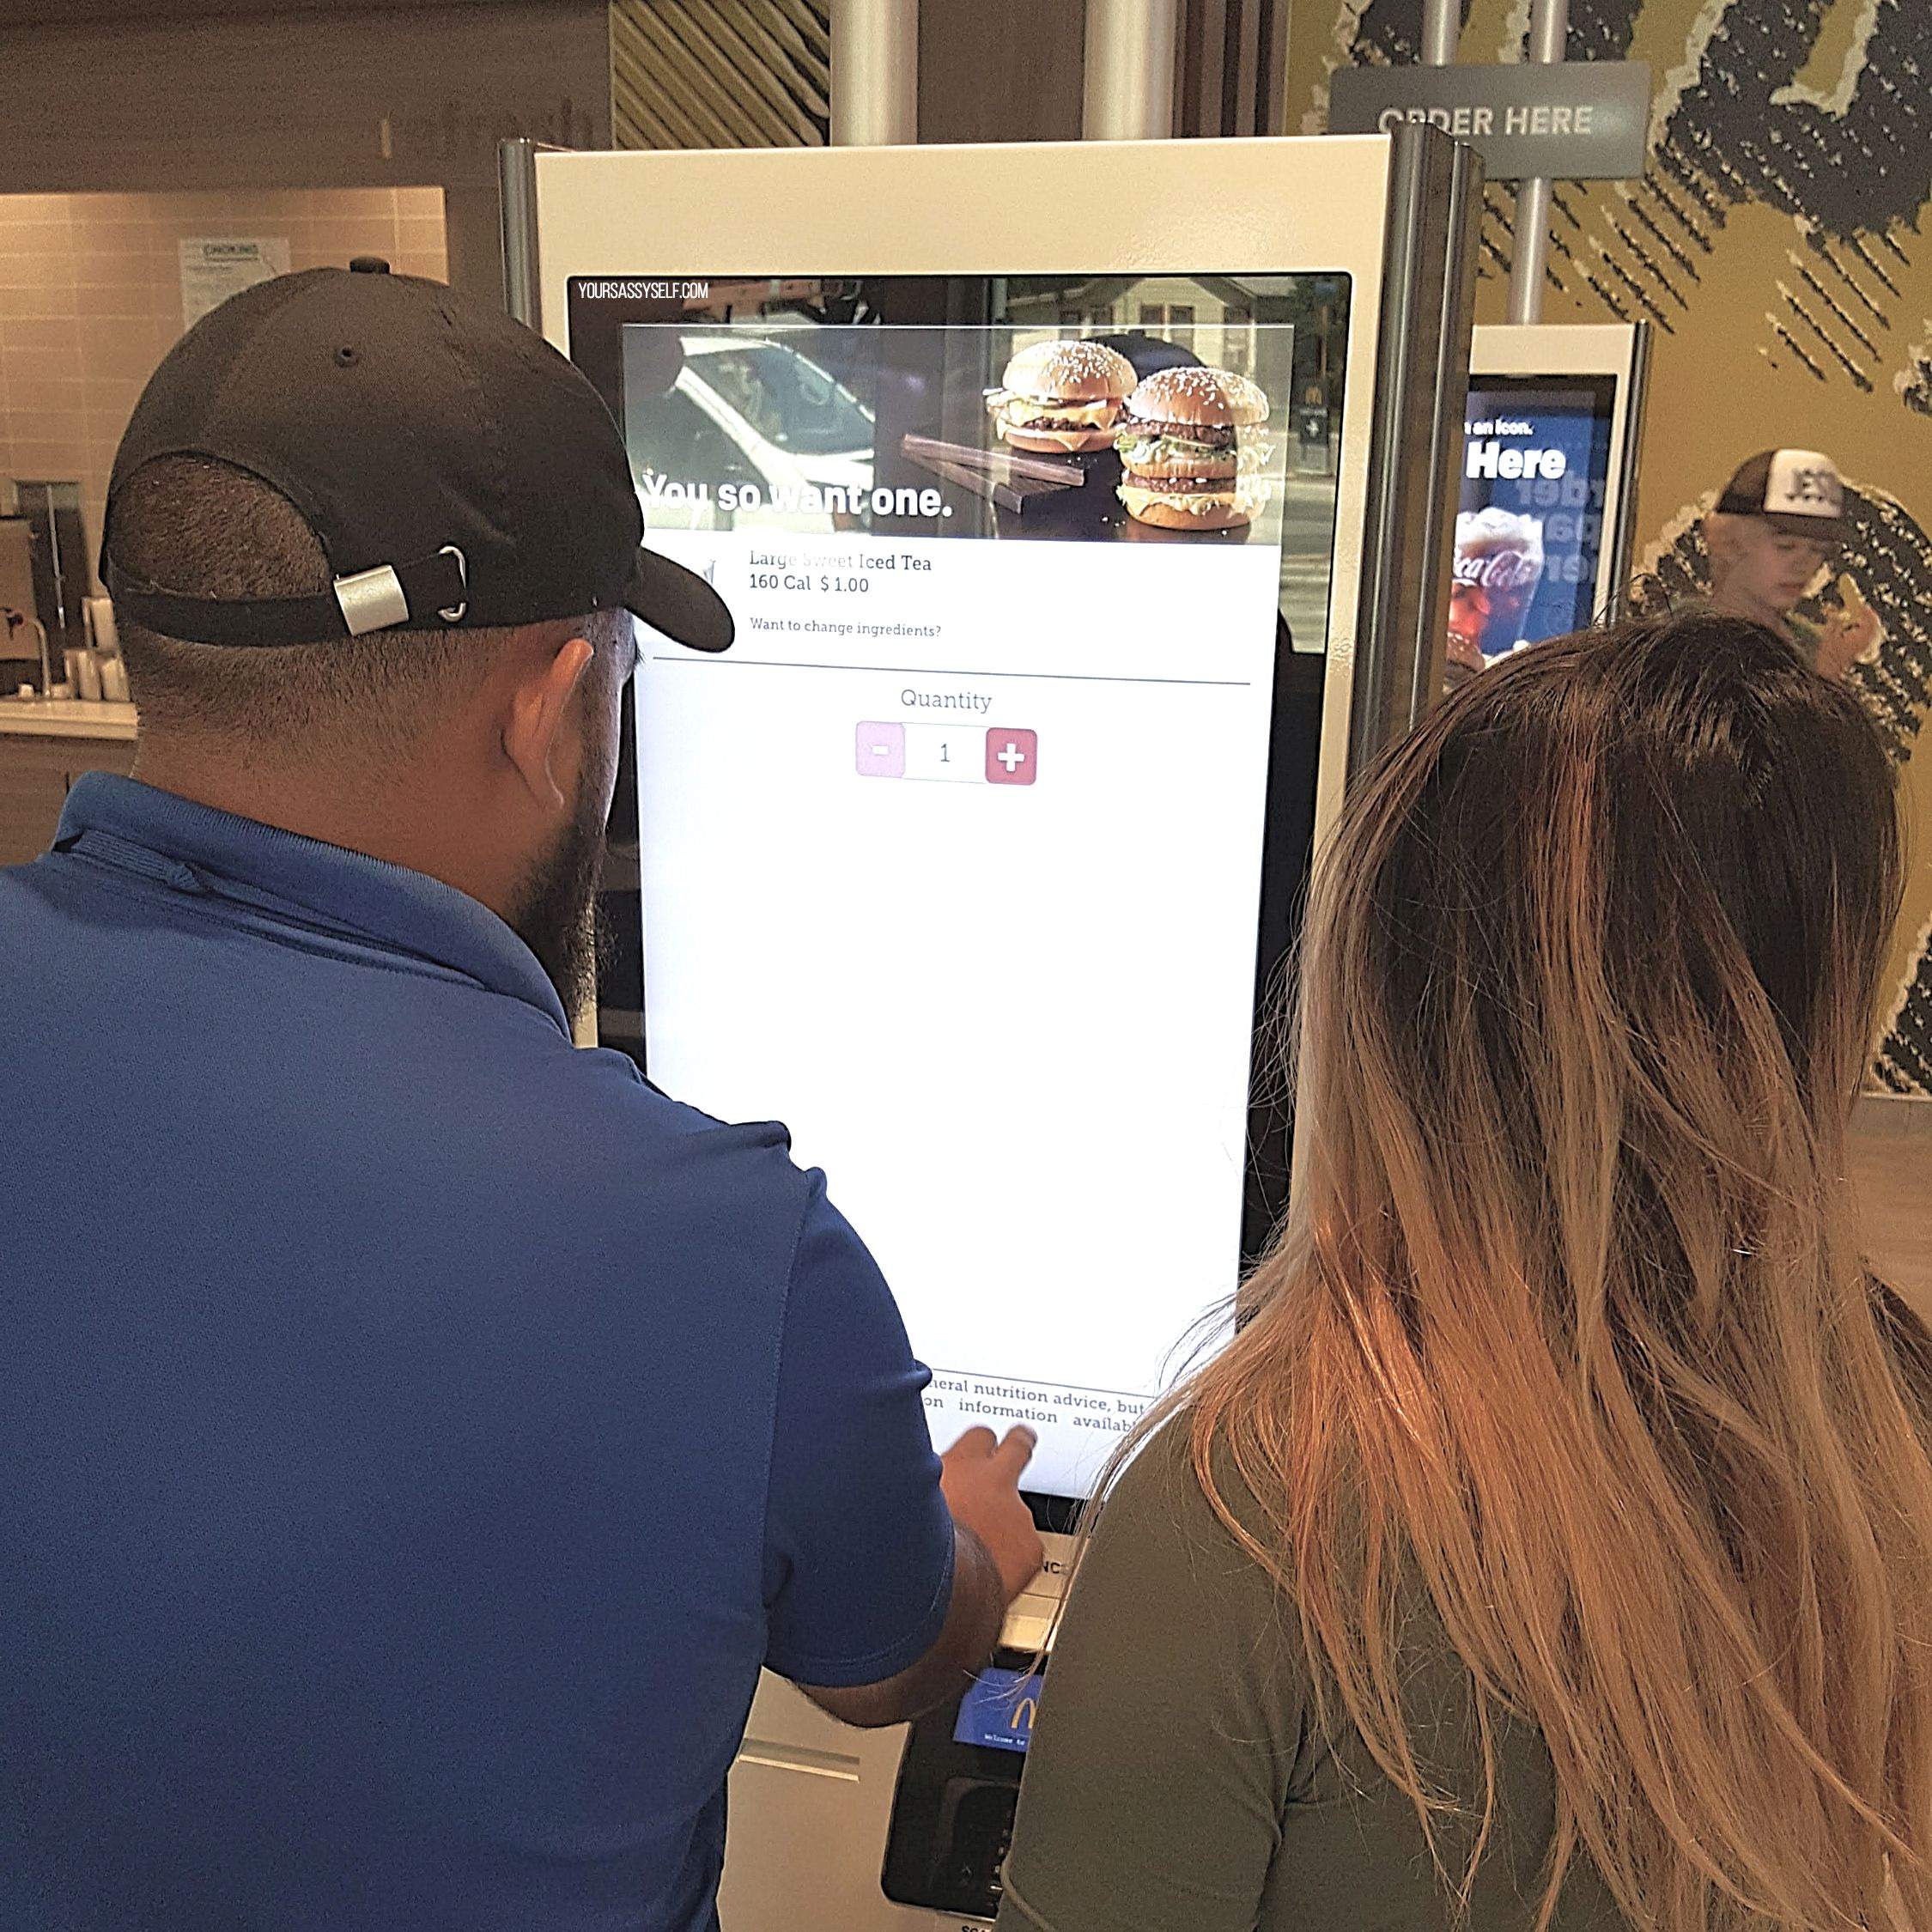 Couple ordering at McDonald's Digital Kiosk - yoursassyself.com